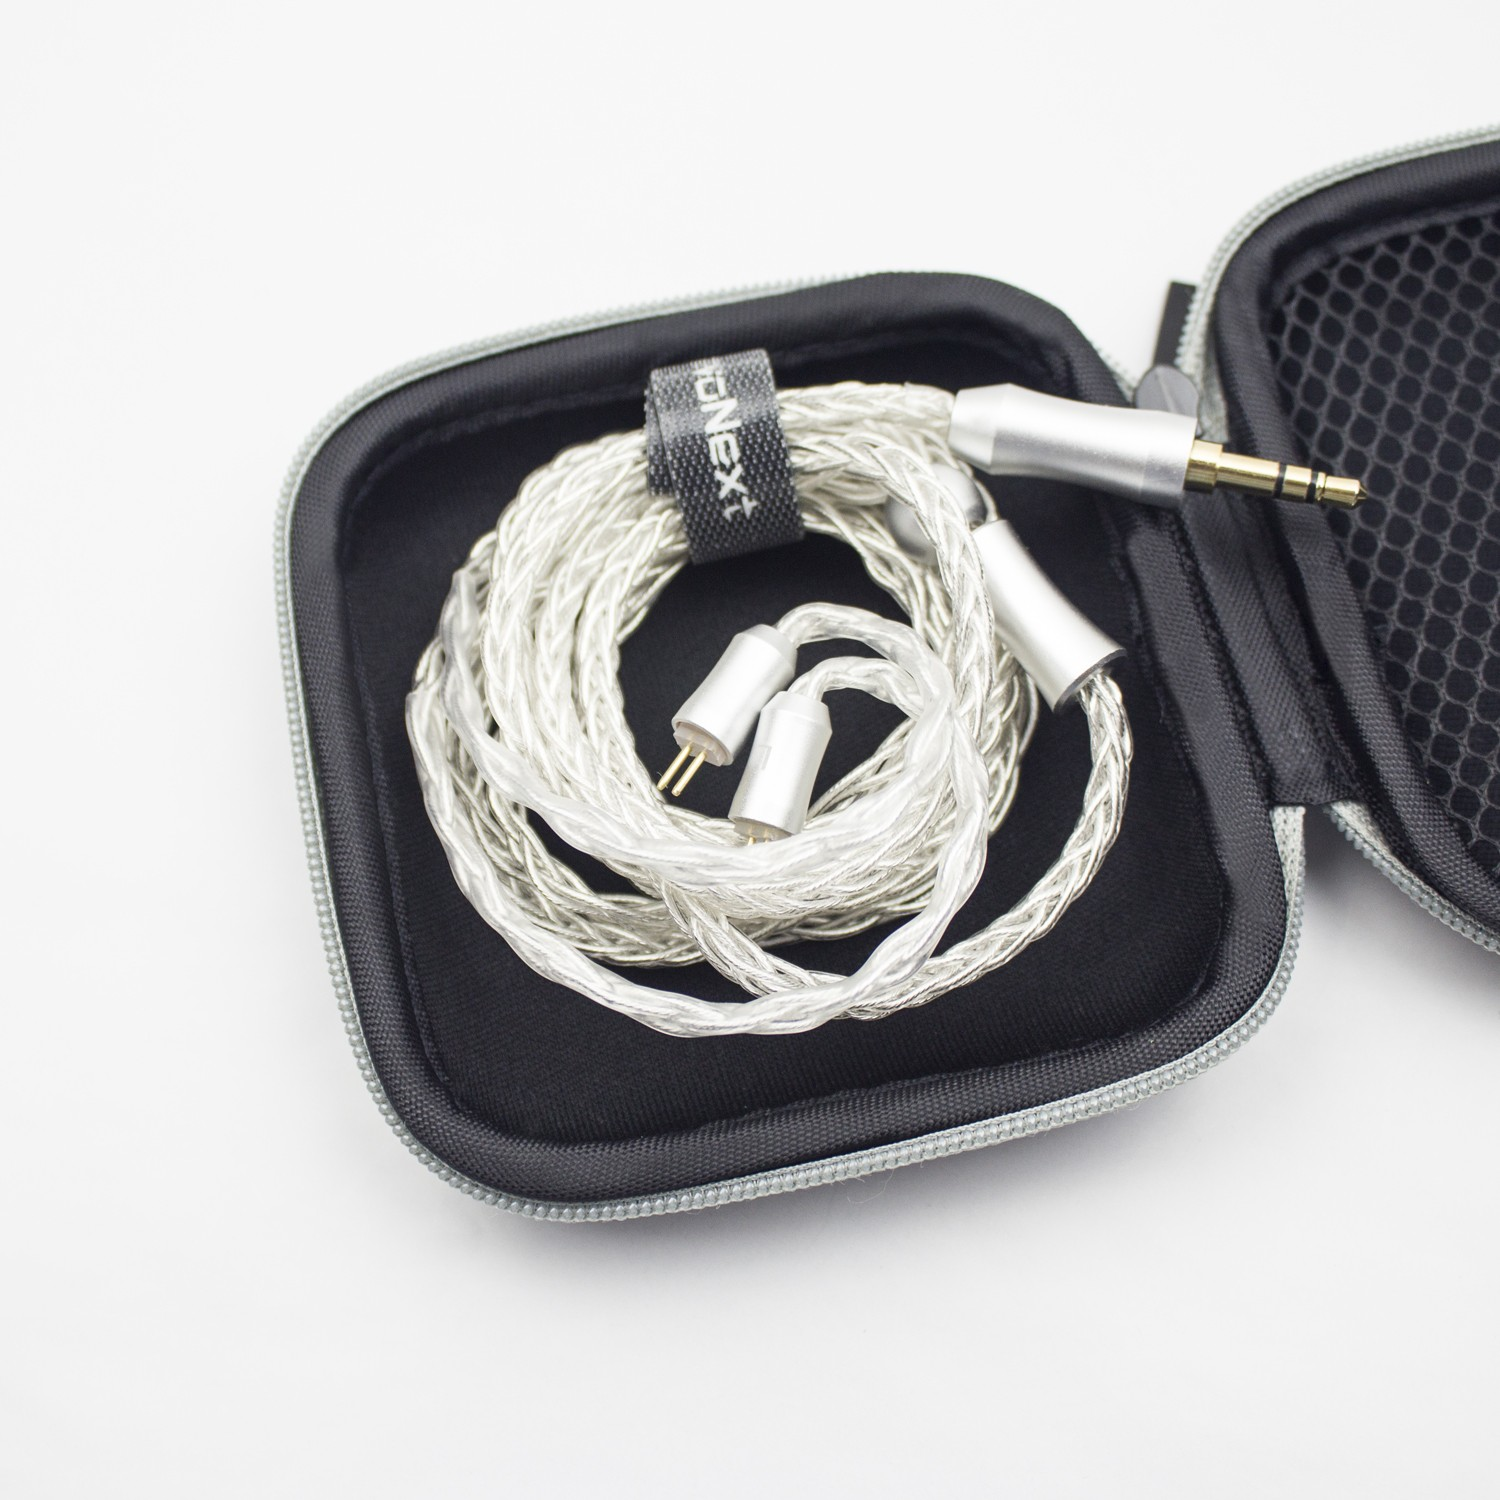 professional wireless headphone case bulk buy for earbuds-5